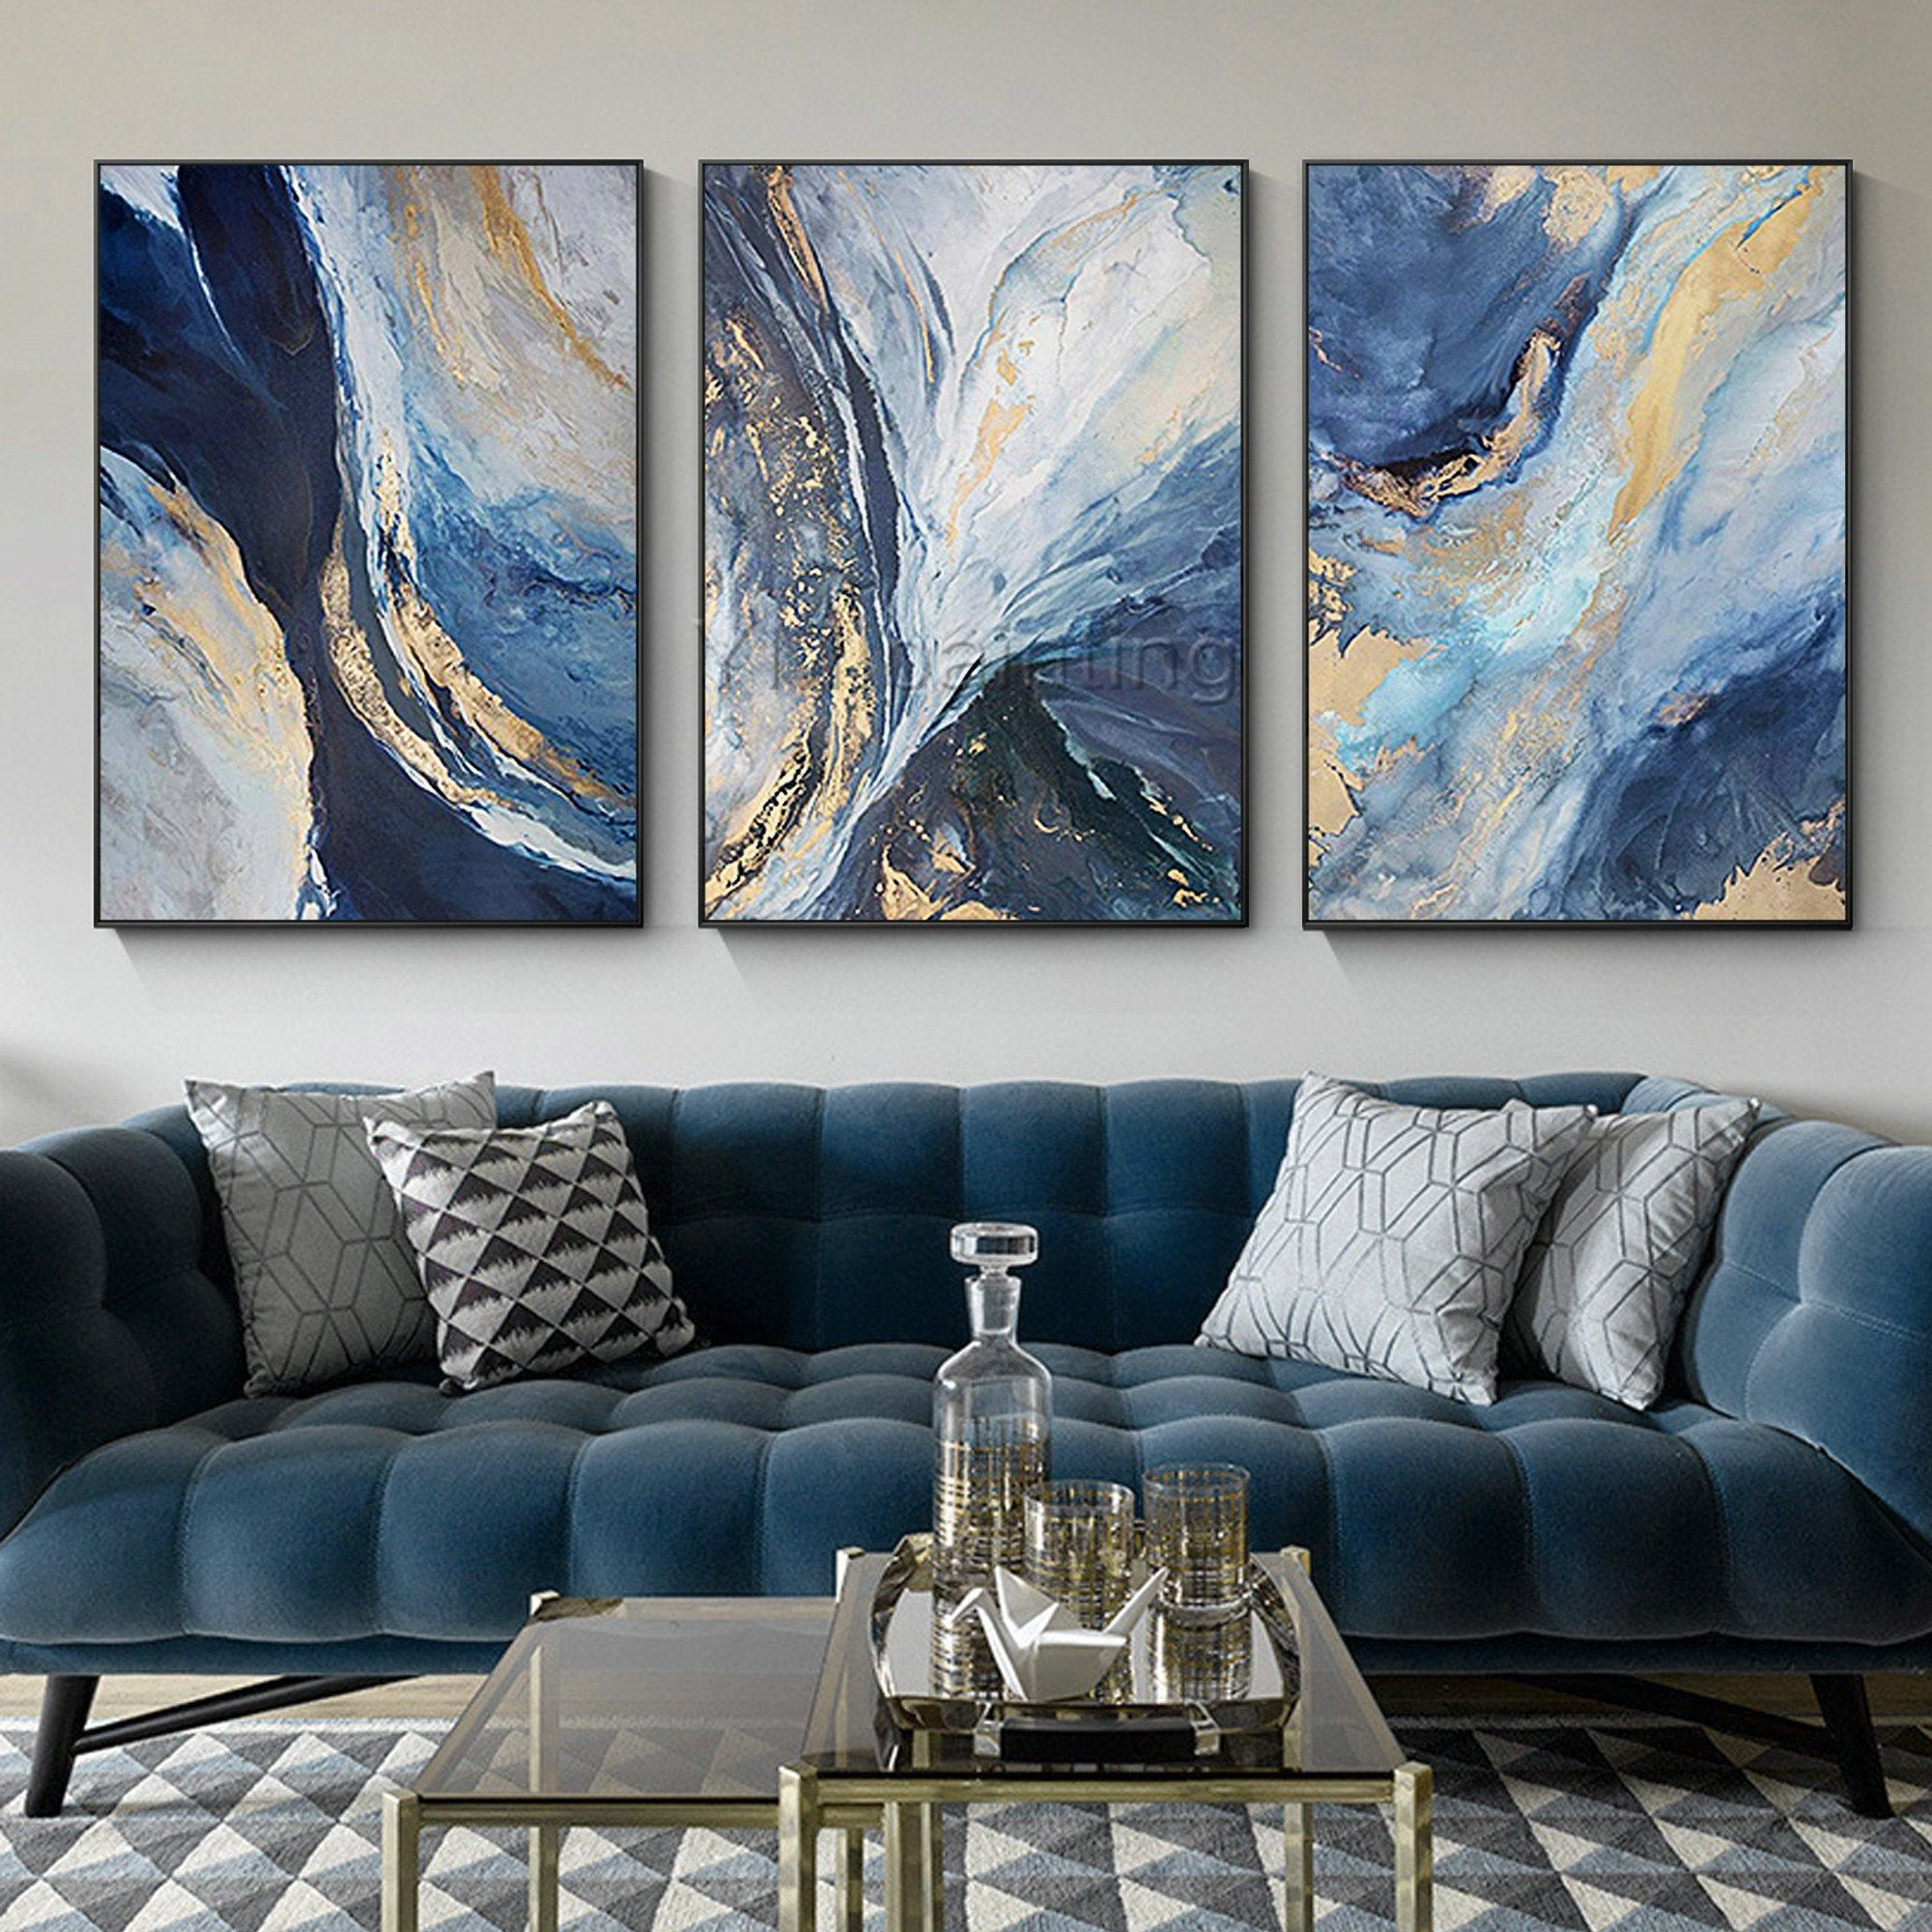 Framed Wall Art 3 Pieces Wall Art Gold Painting Ocean Navy Blue Art Abstract Acrylic Paintings On Canvas Set Of 3 Wall Art In 2020 Abstract Wall Art Living Room Wall